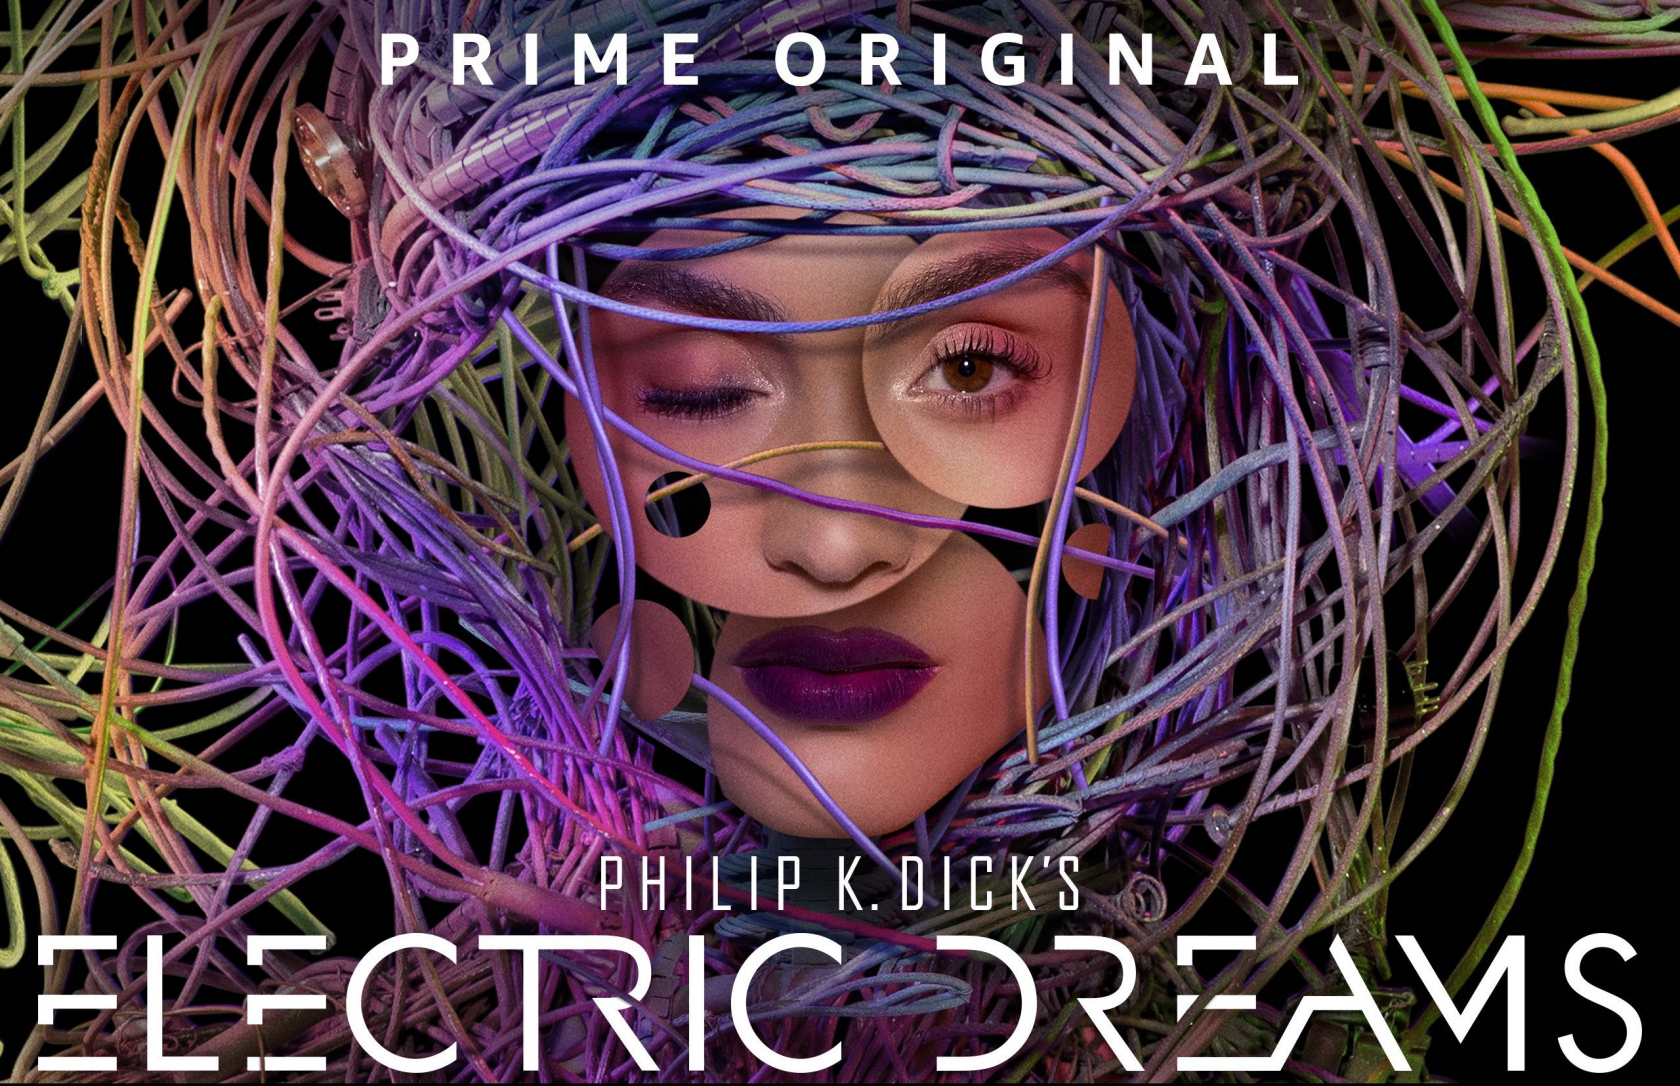 'Philip K. Dick's Electric Dreams': Amazon Sets January Premiere